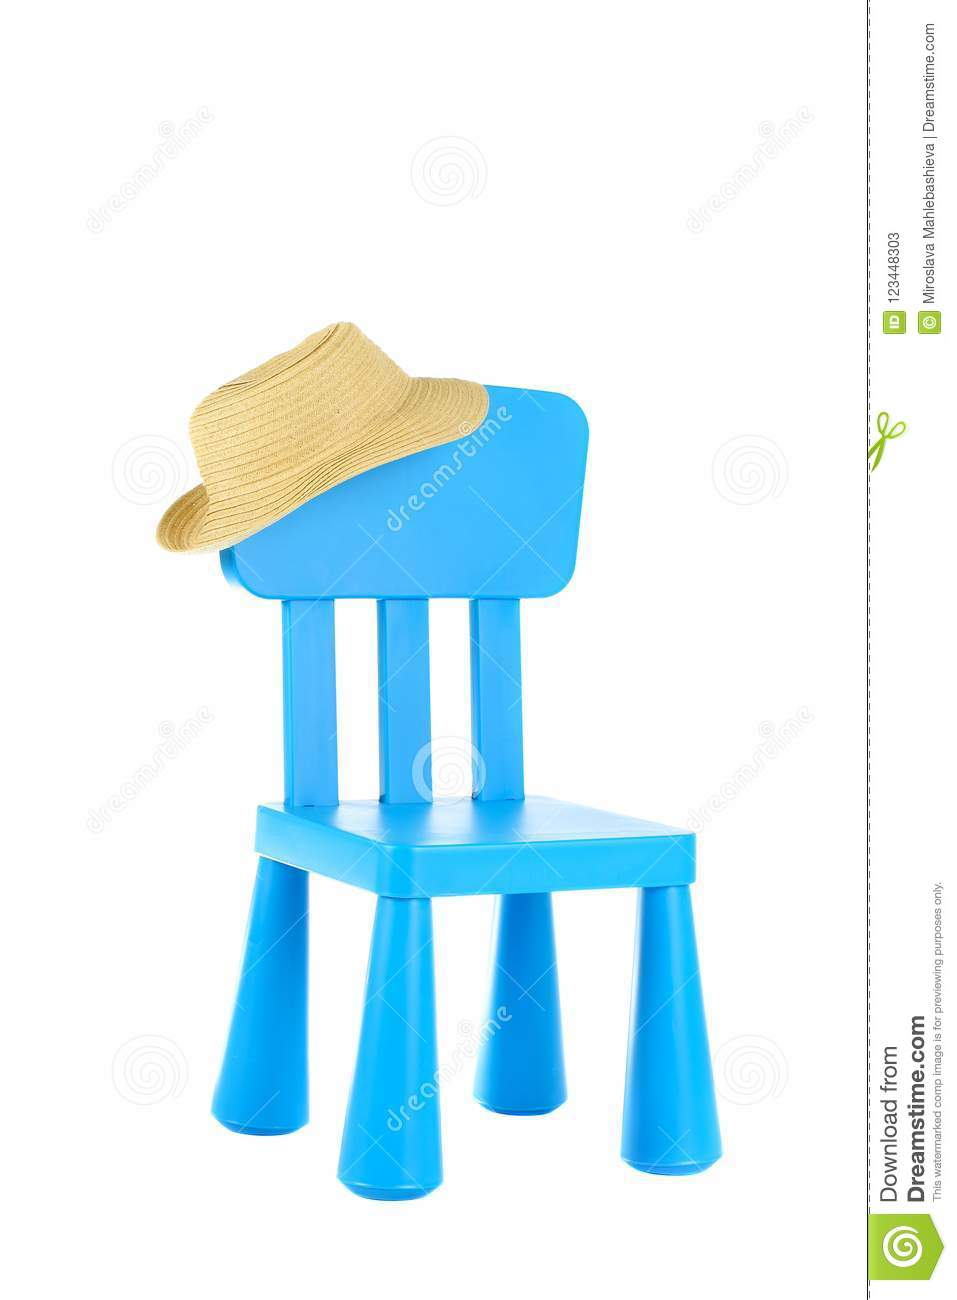 Childrens Straw Hat Hanging On A Blue Plastic Kids Chair Isolated On White Background Stock Image Image Of Hanging Season 123448303